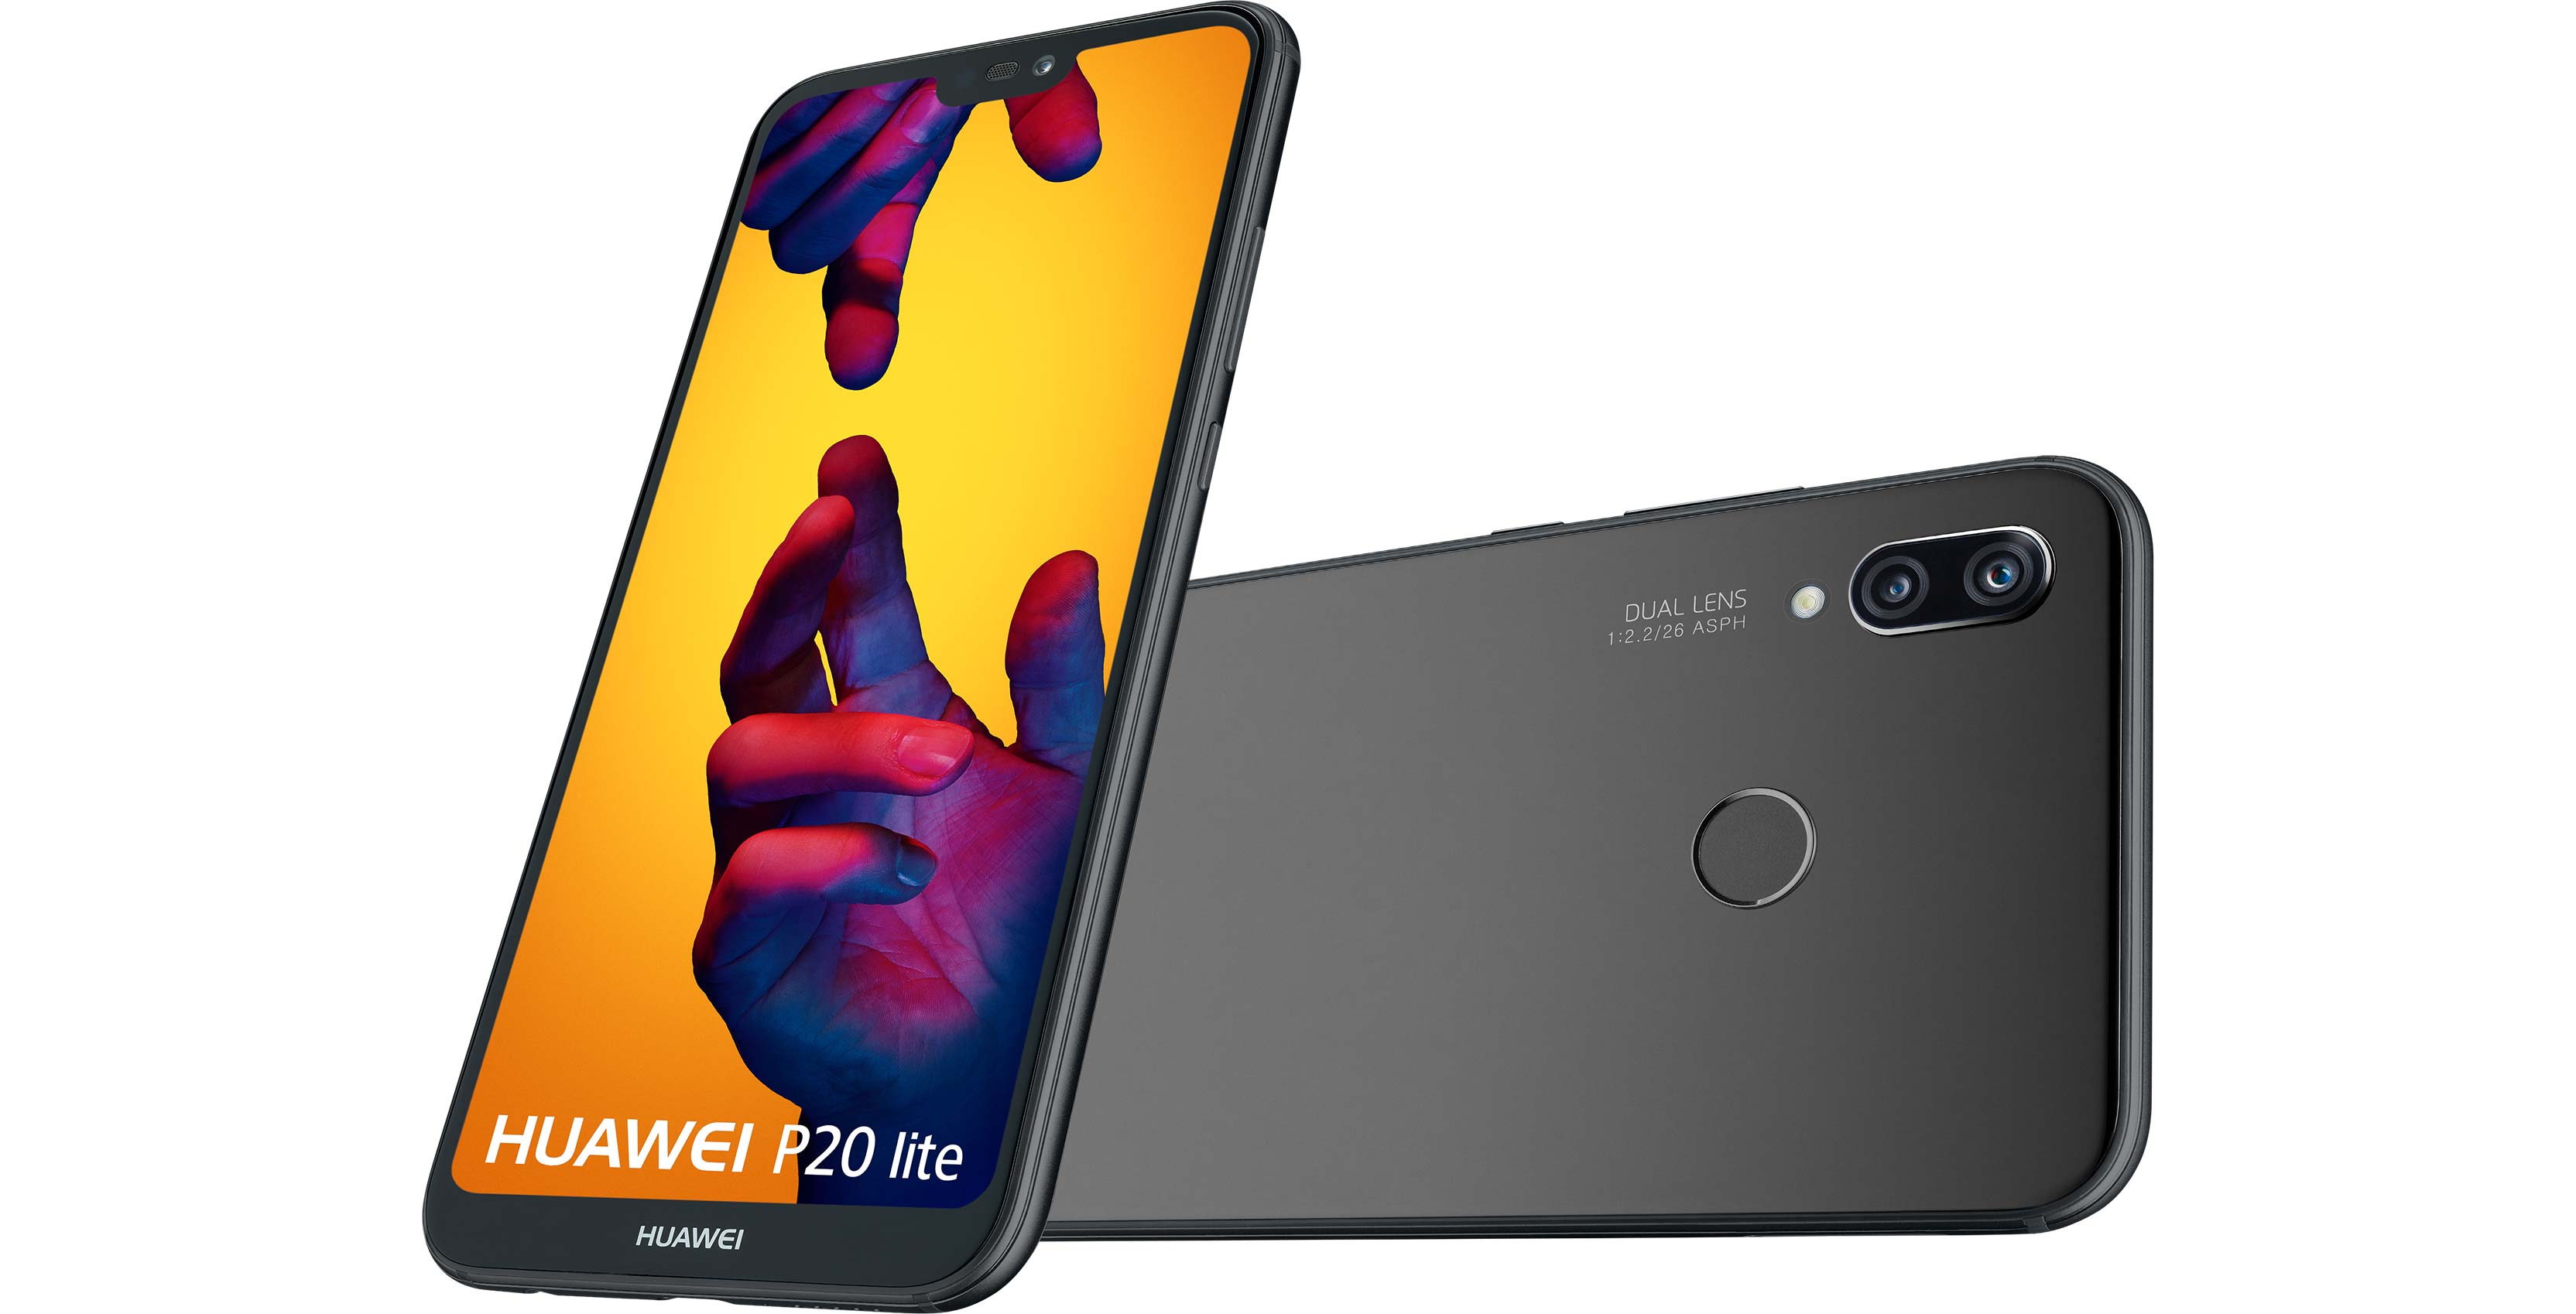 Huawei P20 Lite will be exclusive to Rogers and Fido